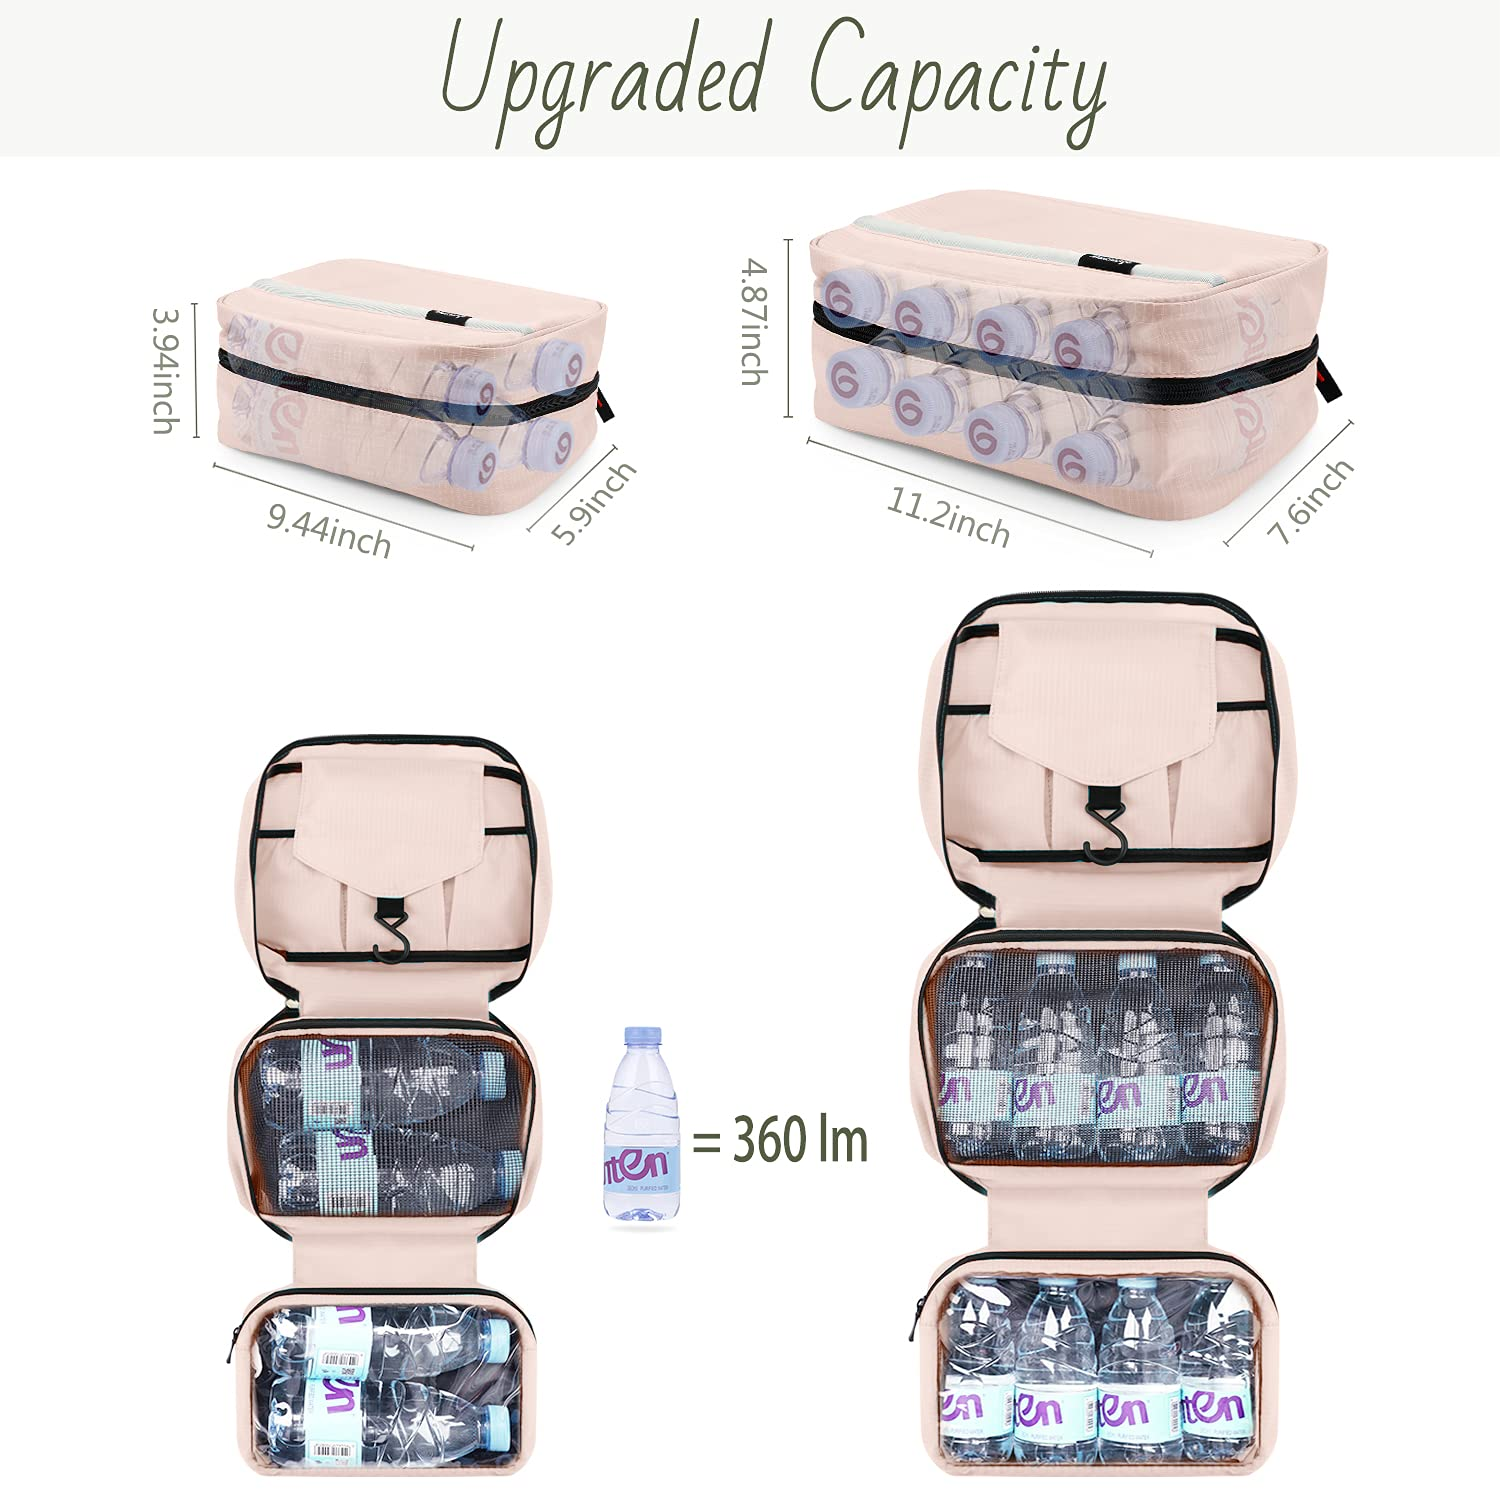 Hanging Toiletry Bag, Travel Toiletry Bag   Foldable Dopp Kit with Large Capacity for Men   4 Layers Portable Waterproof Hygiene Bag for Women   Travel Bathroom Organizer(Pink) : Beauty